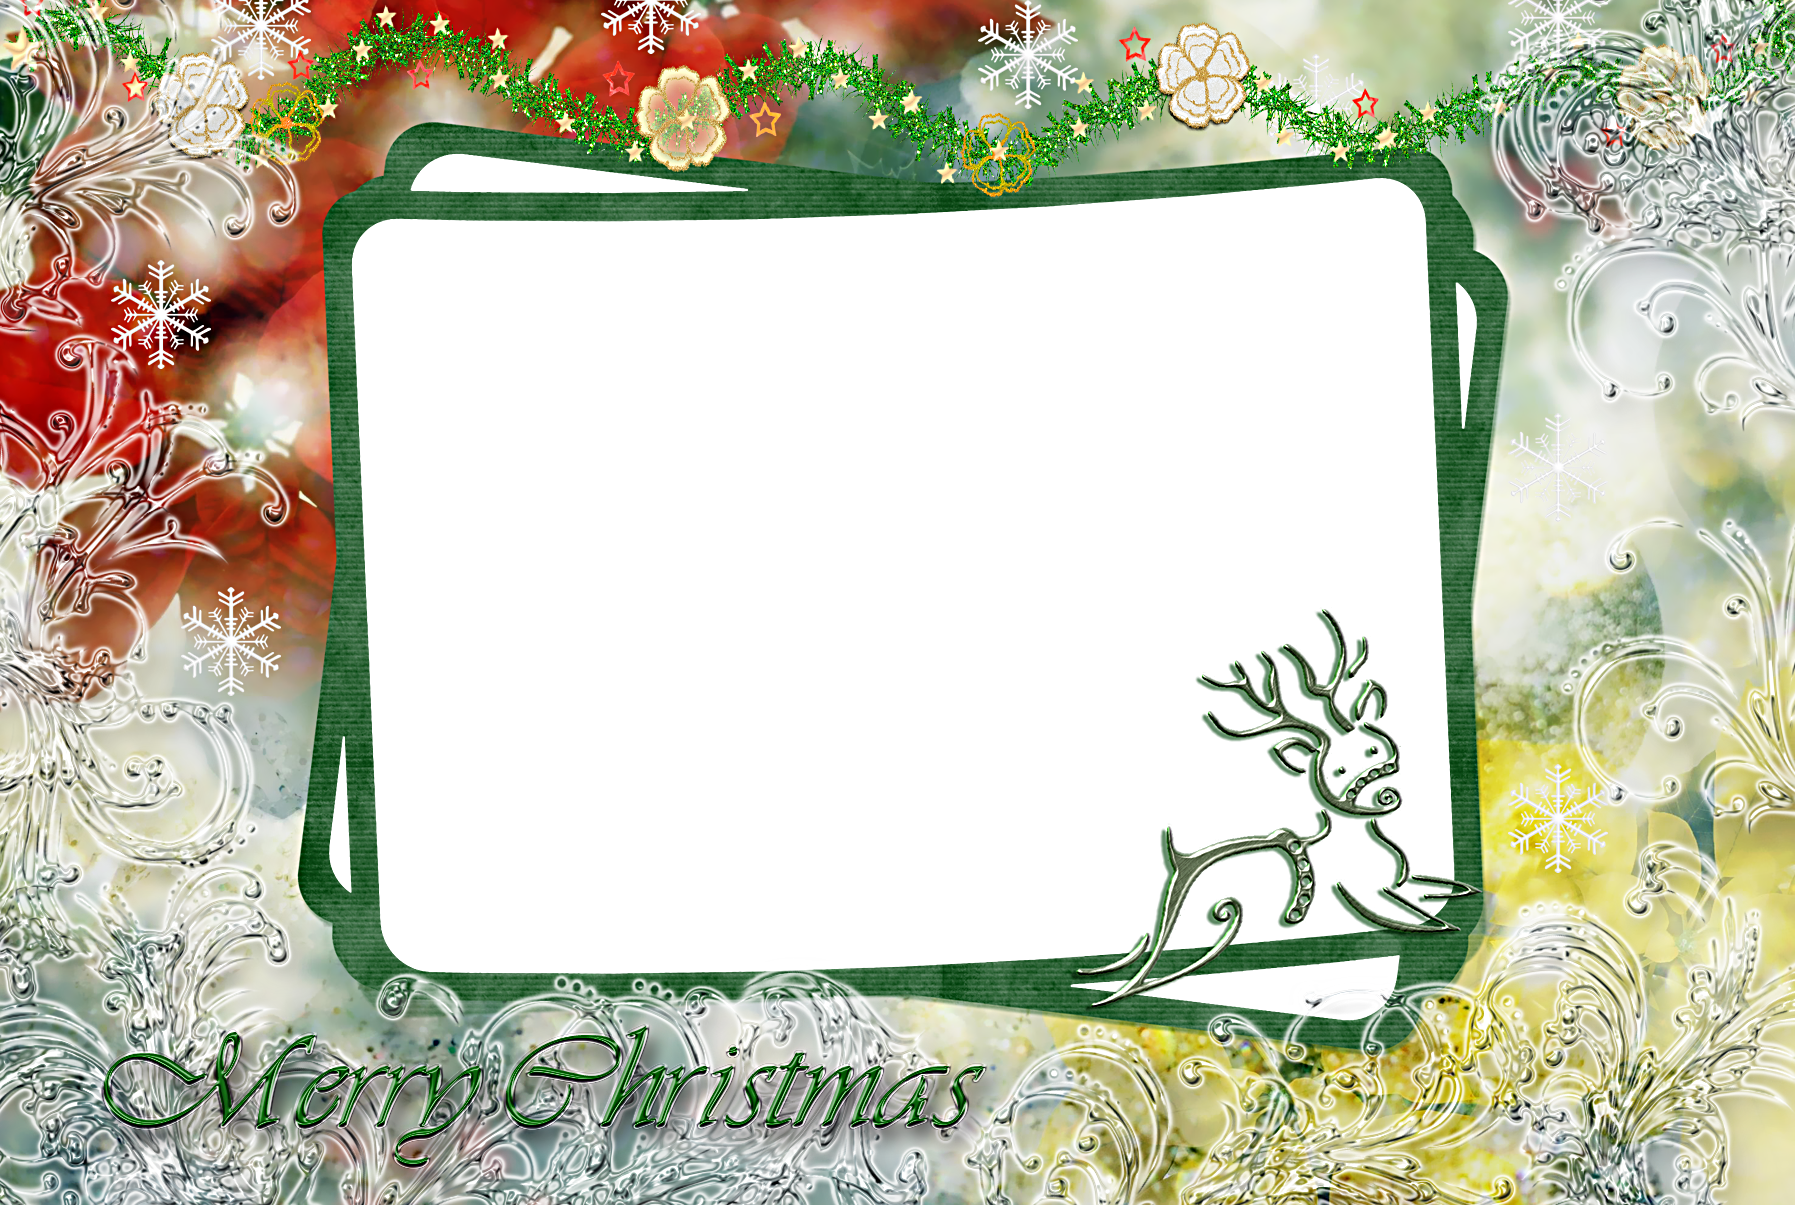 picture frame templates for photoshop - 9 christmas frame psd template images christmas